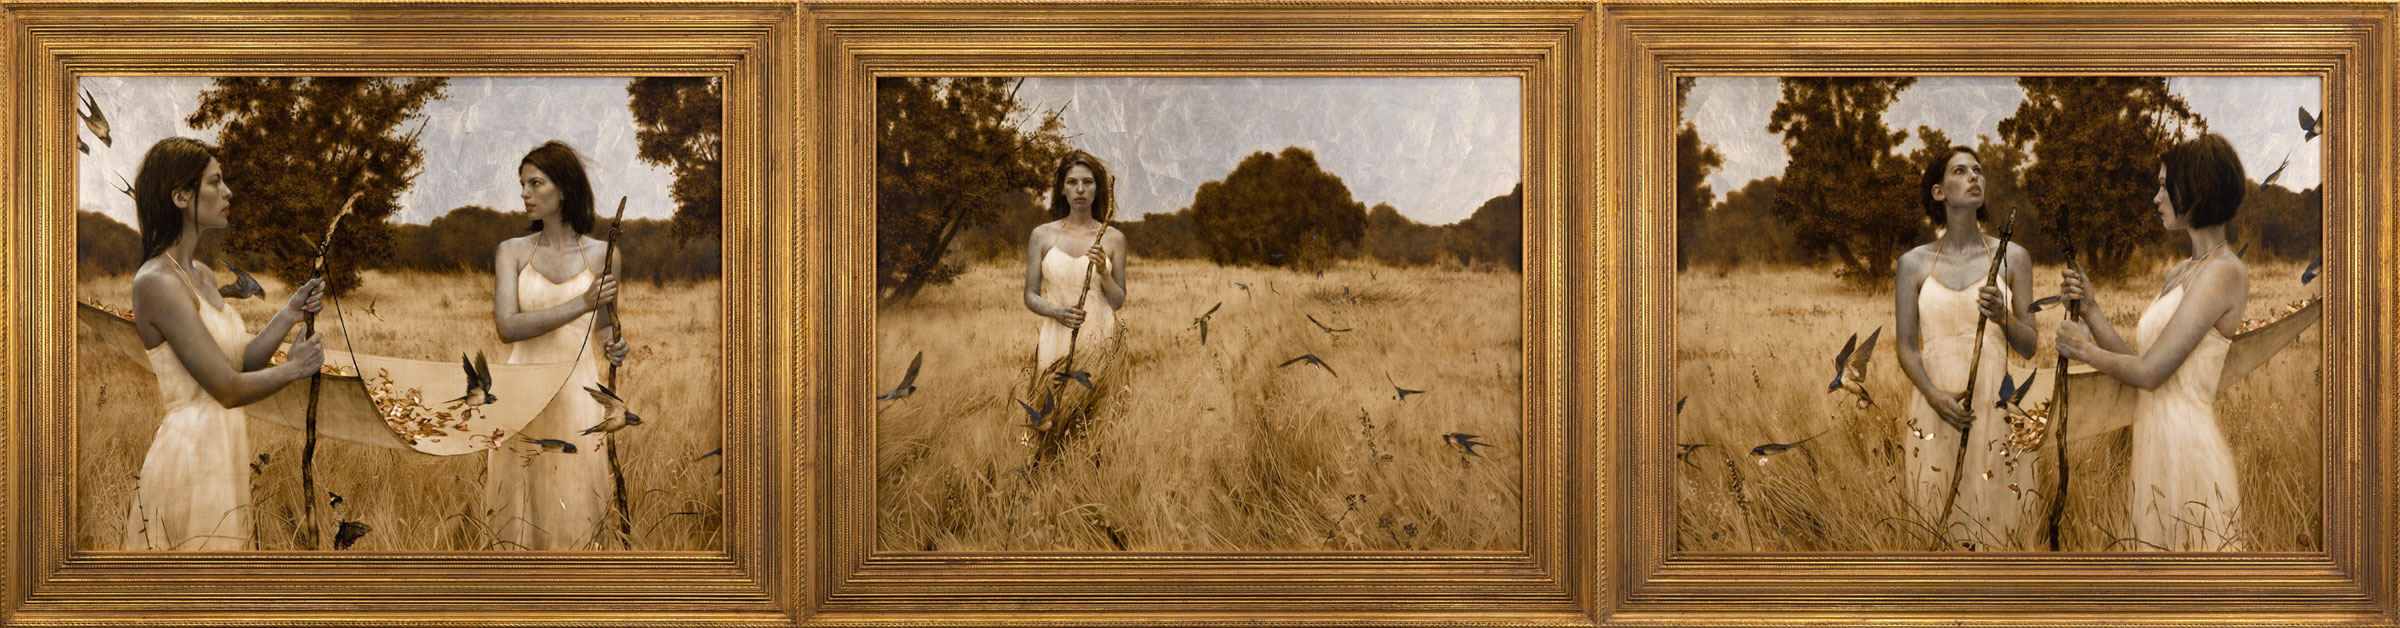 Ad Hoc Quod Iterum (To Be Again).  34 x 120 inch Triptych. Oil, gold and silver leaf on wood. Private collection